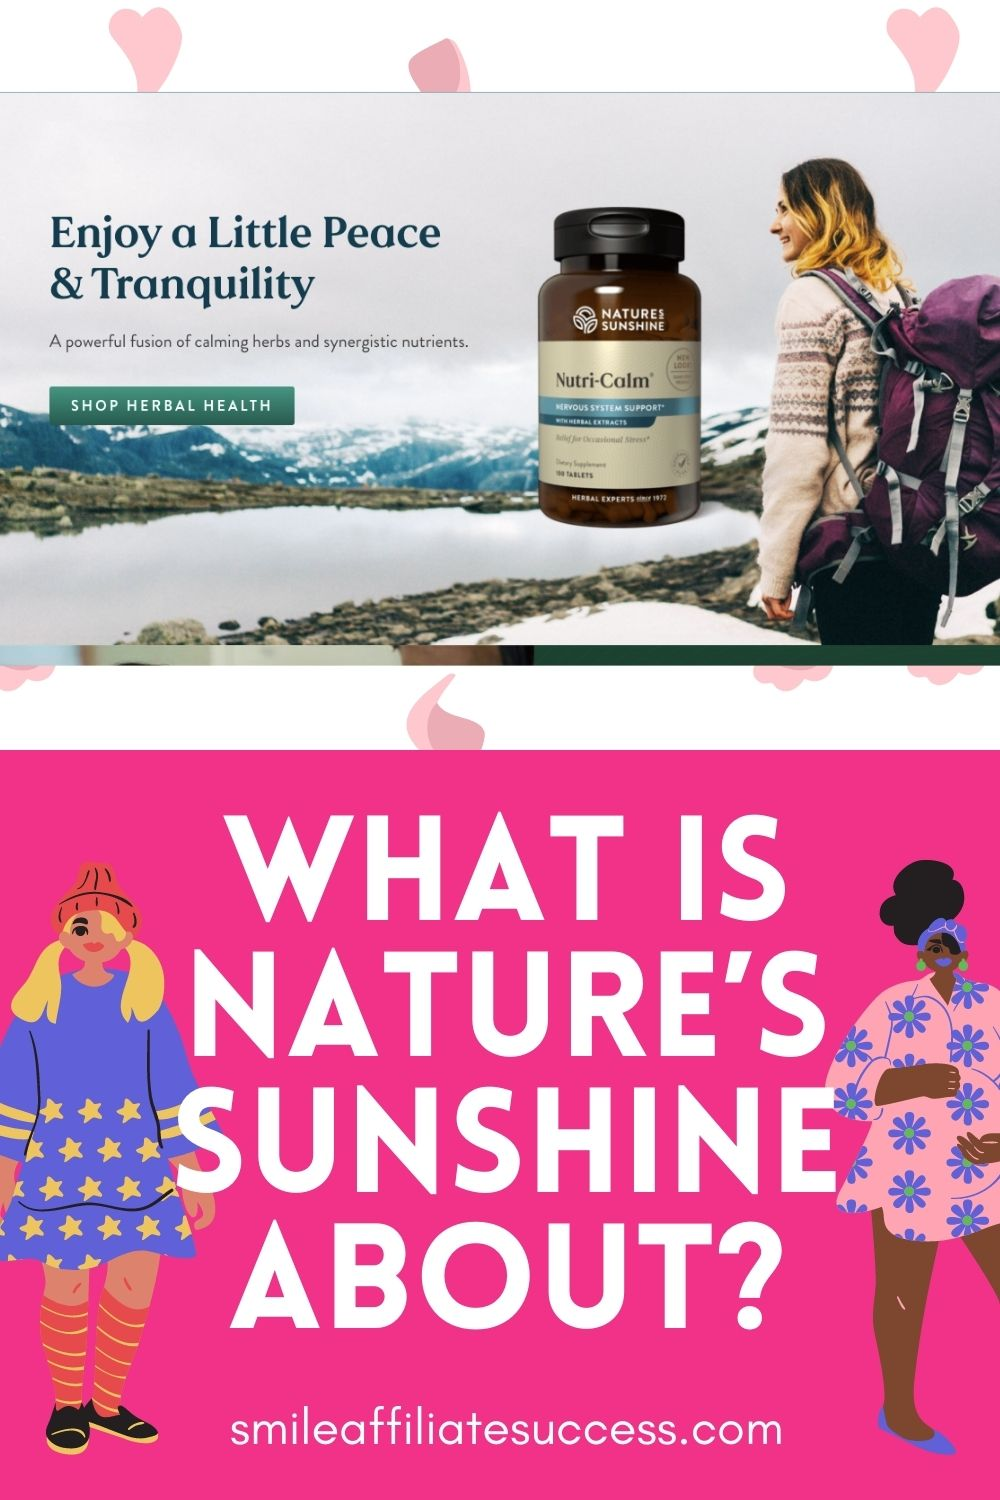 What Is Nature's Sunshine About?